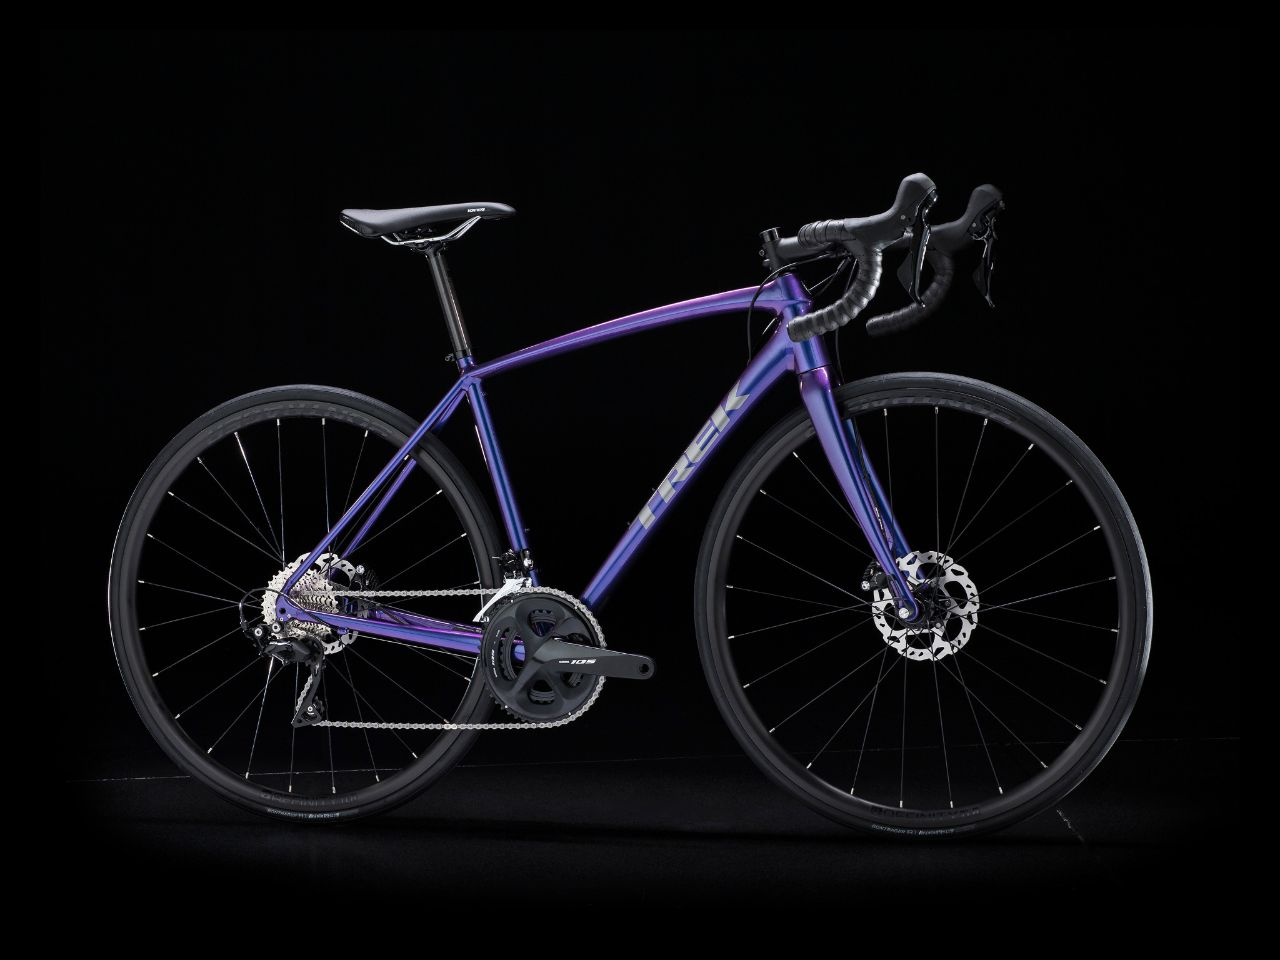 ea269882006 Trek's new Émonda ALR mimics higher end carbon bikes w/ svelte aluminum  frame